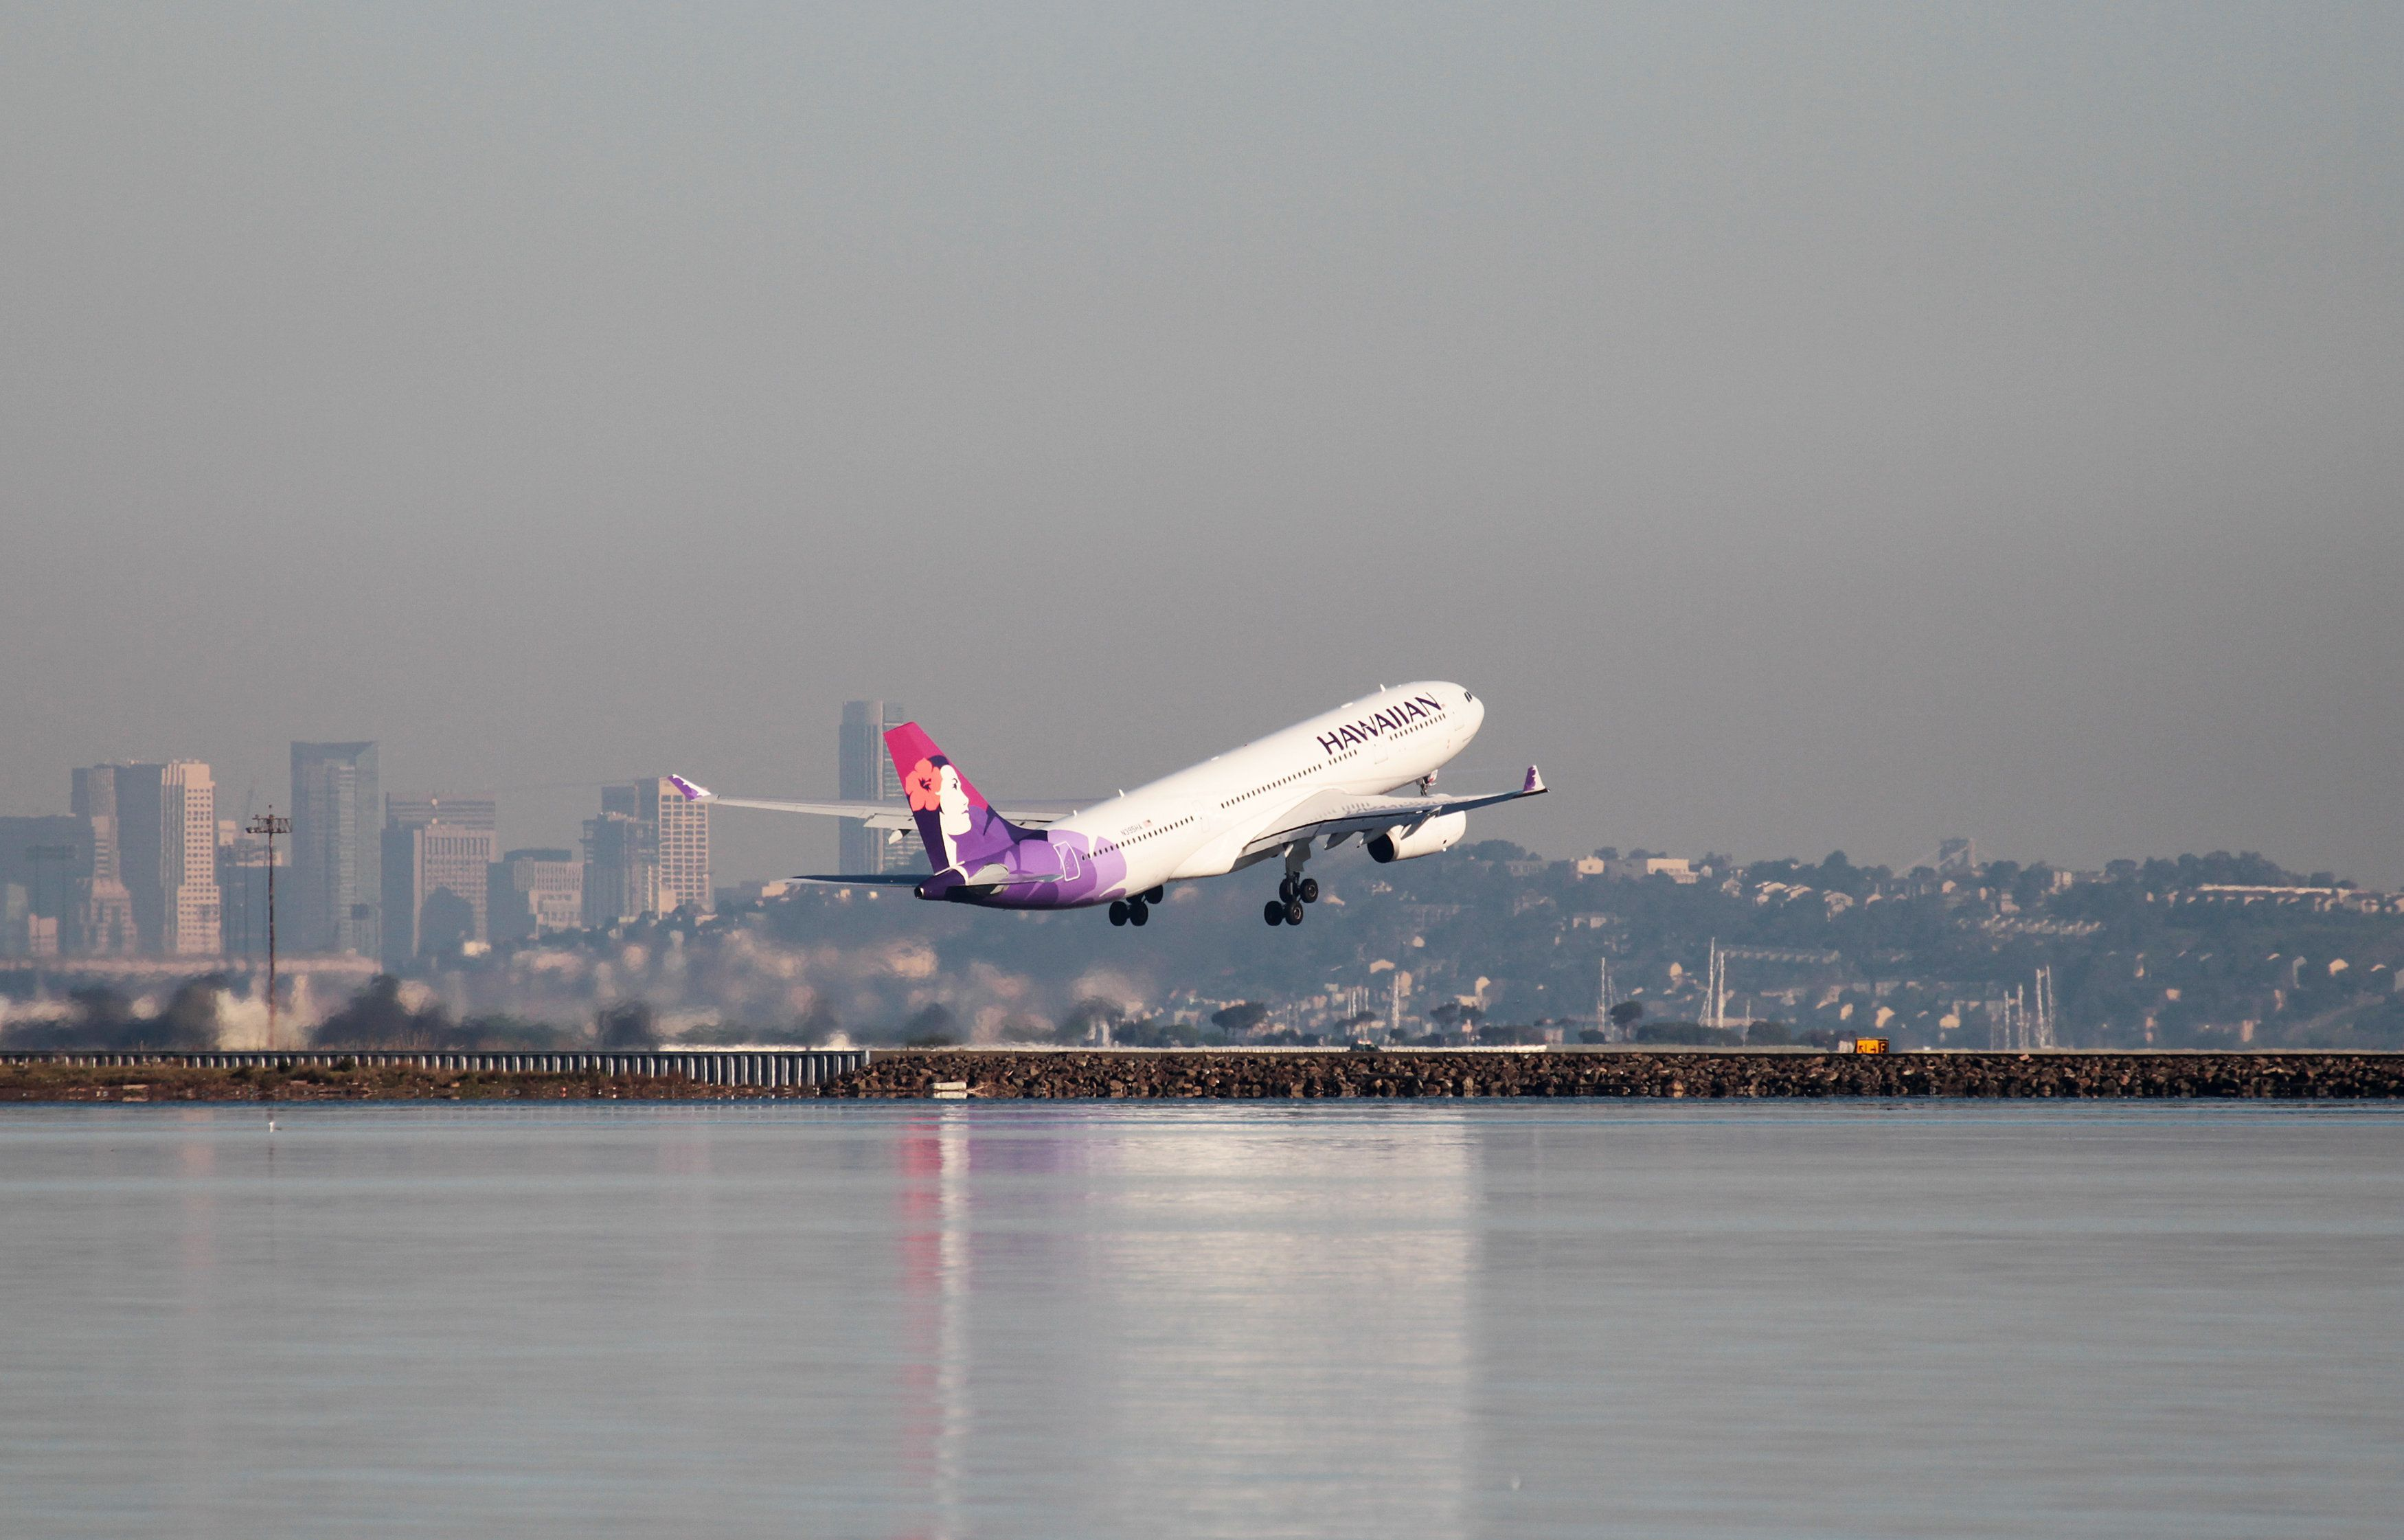 A Hawaiian Airlines Airbus A330-200 takes off at San Francisco International Airport, San Francisco, California, February 16, 2015.   REUTERS/Louis Nastro